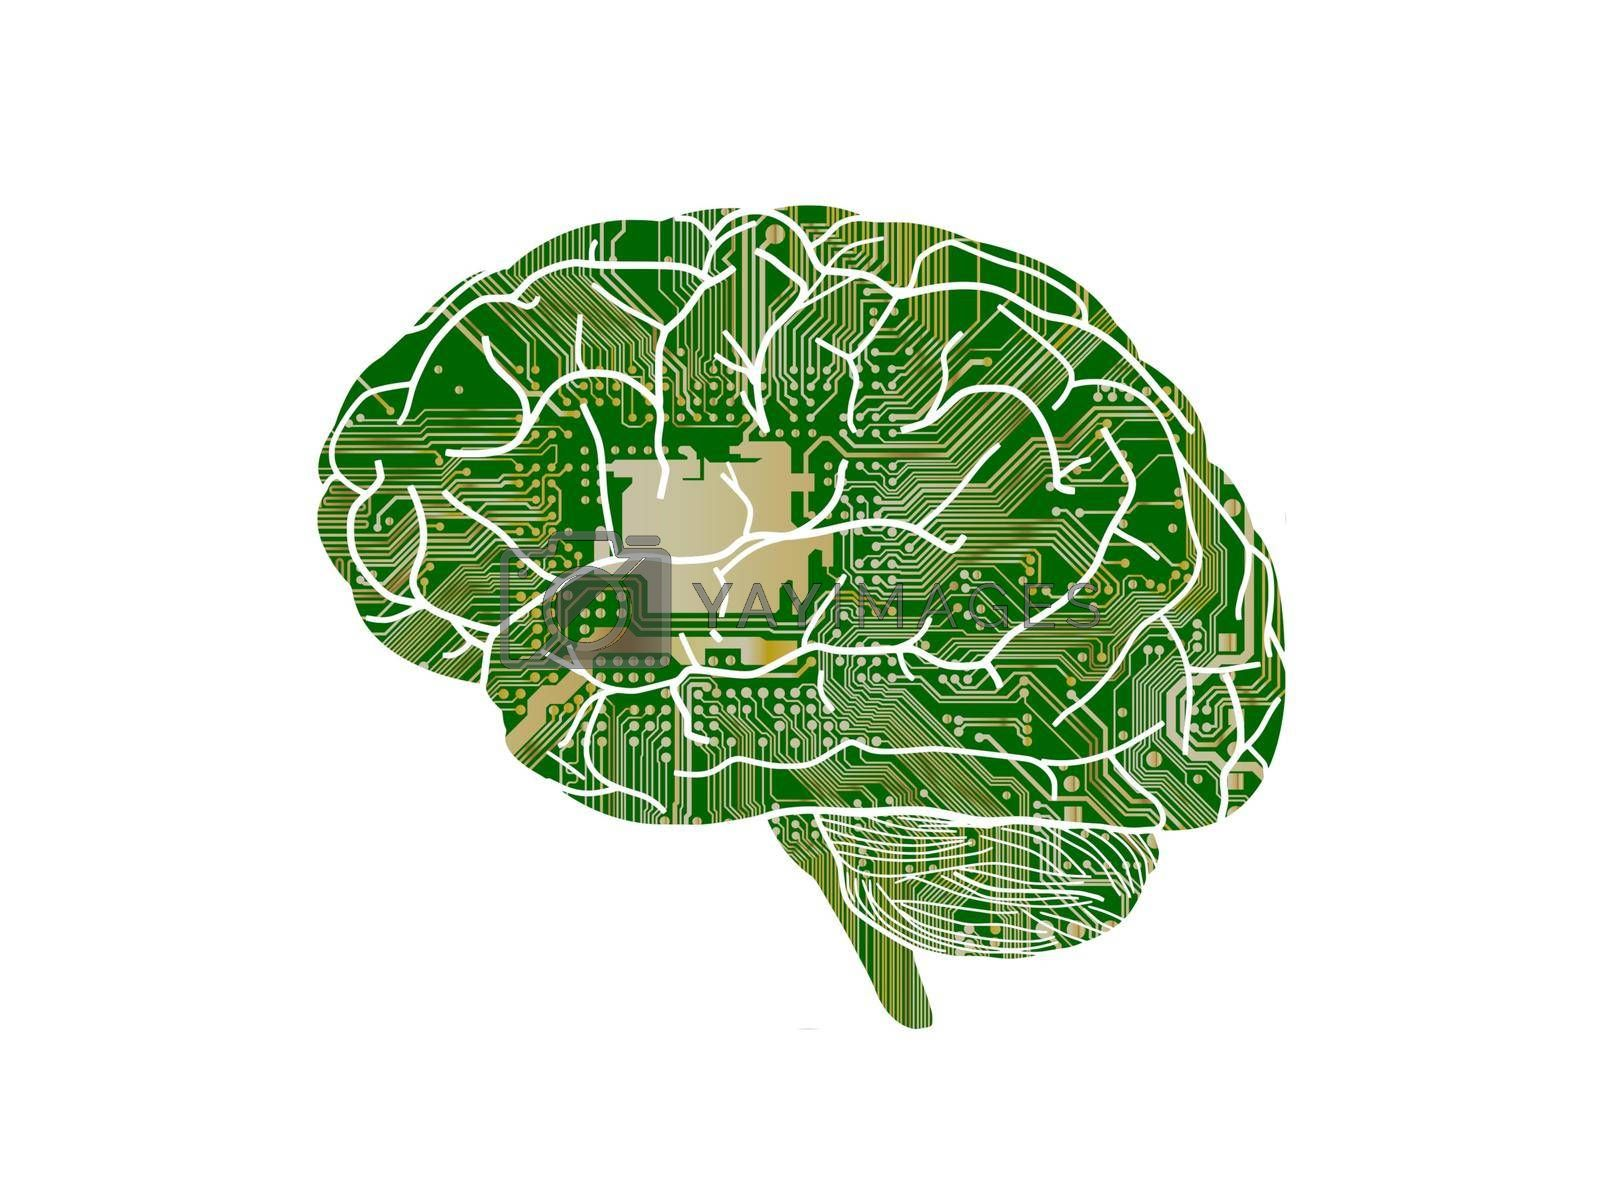 several questions about green the brain on white background - 3d rendering